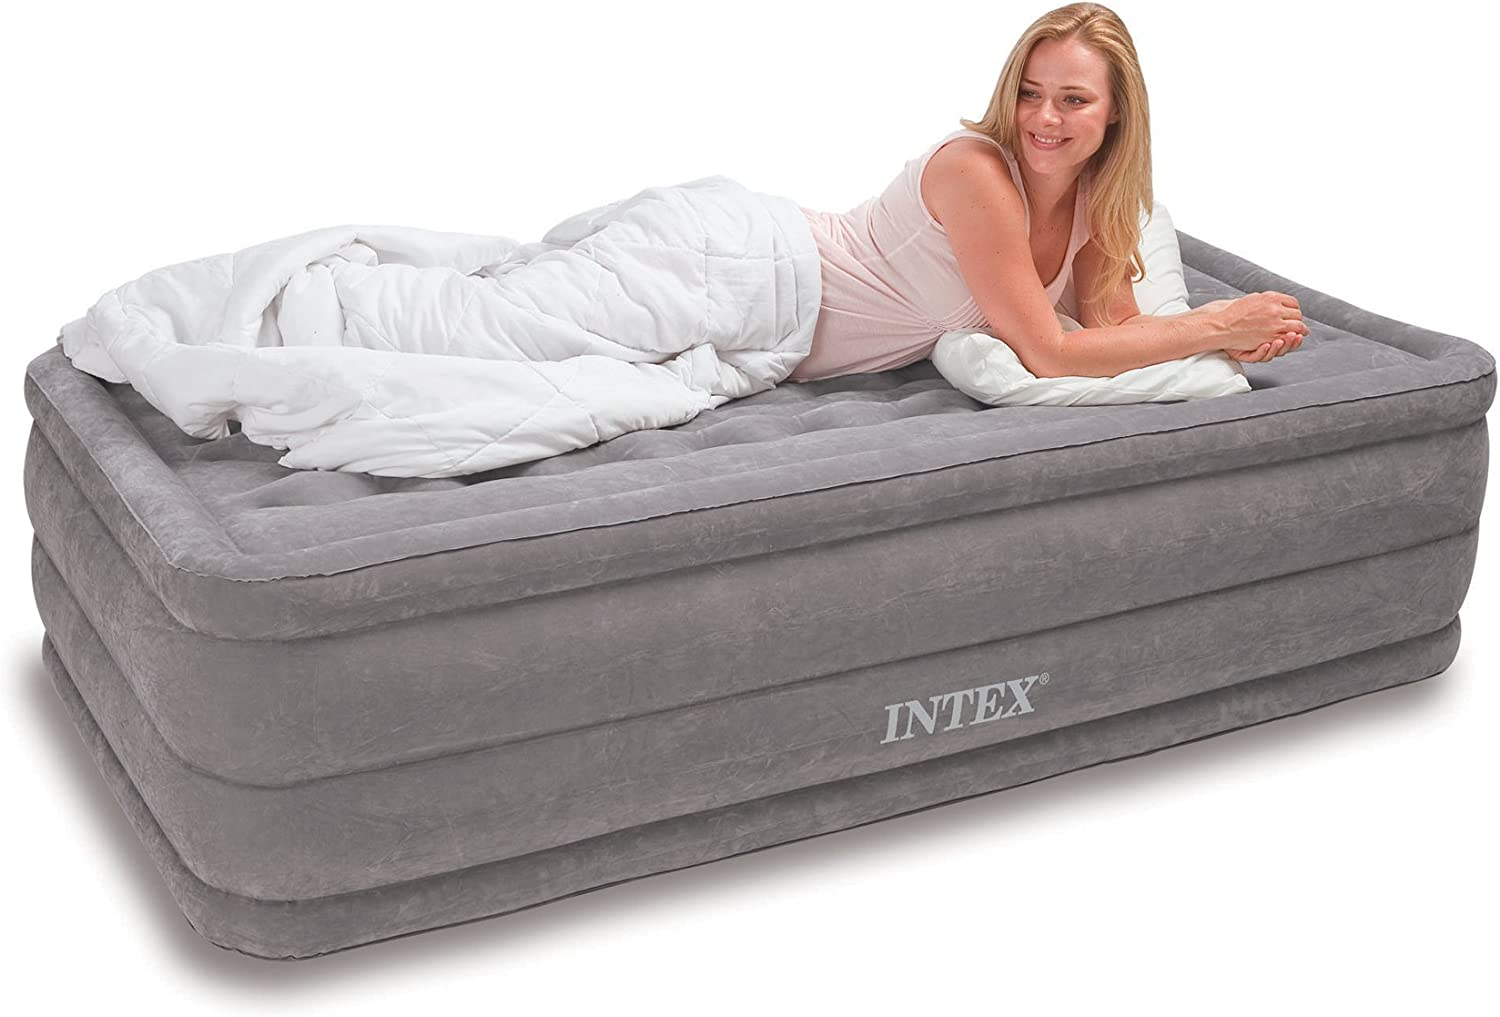 Intex Ultra Plush Airbed with Built-in Electric Pump, Twin, Bed Height 18